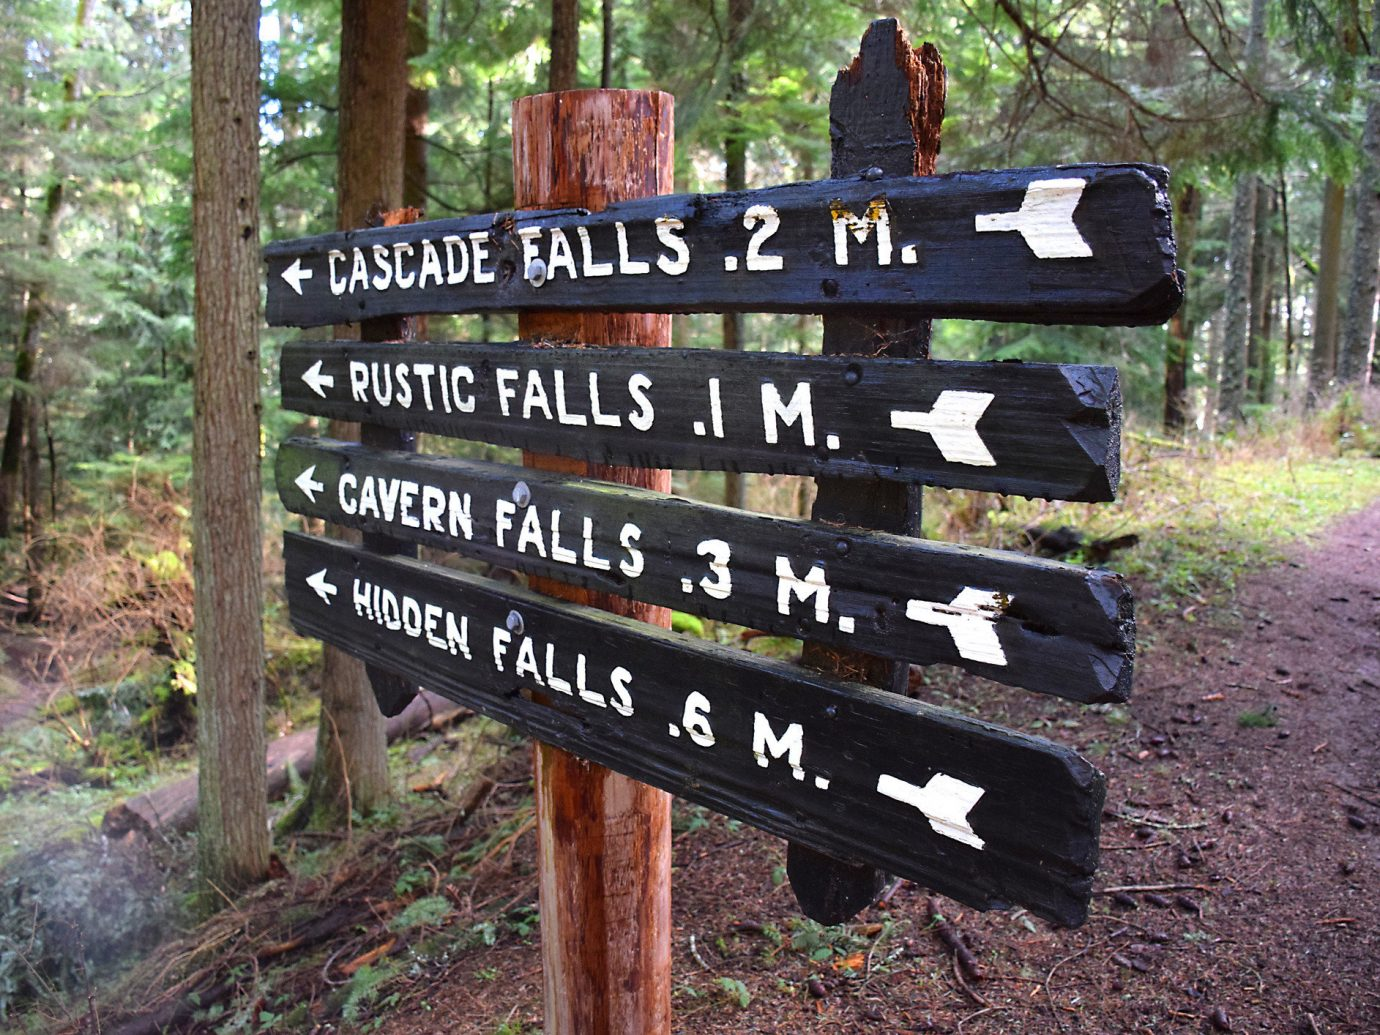 Trip Ideas tree outdoor grass trail wilderness wood wooden sign park Forest signage traffic sign wooded